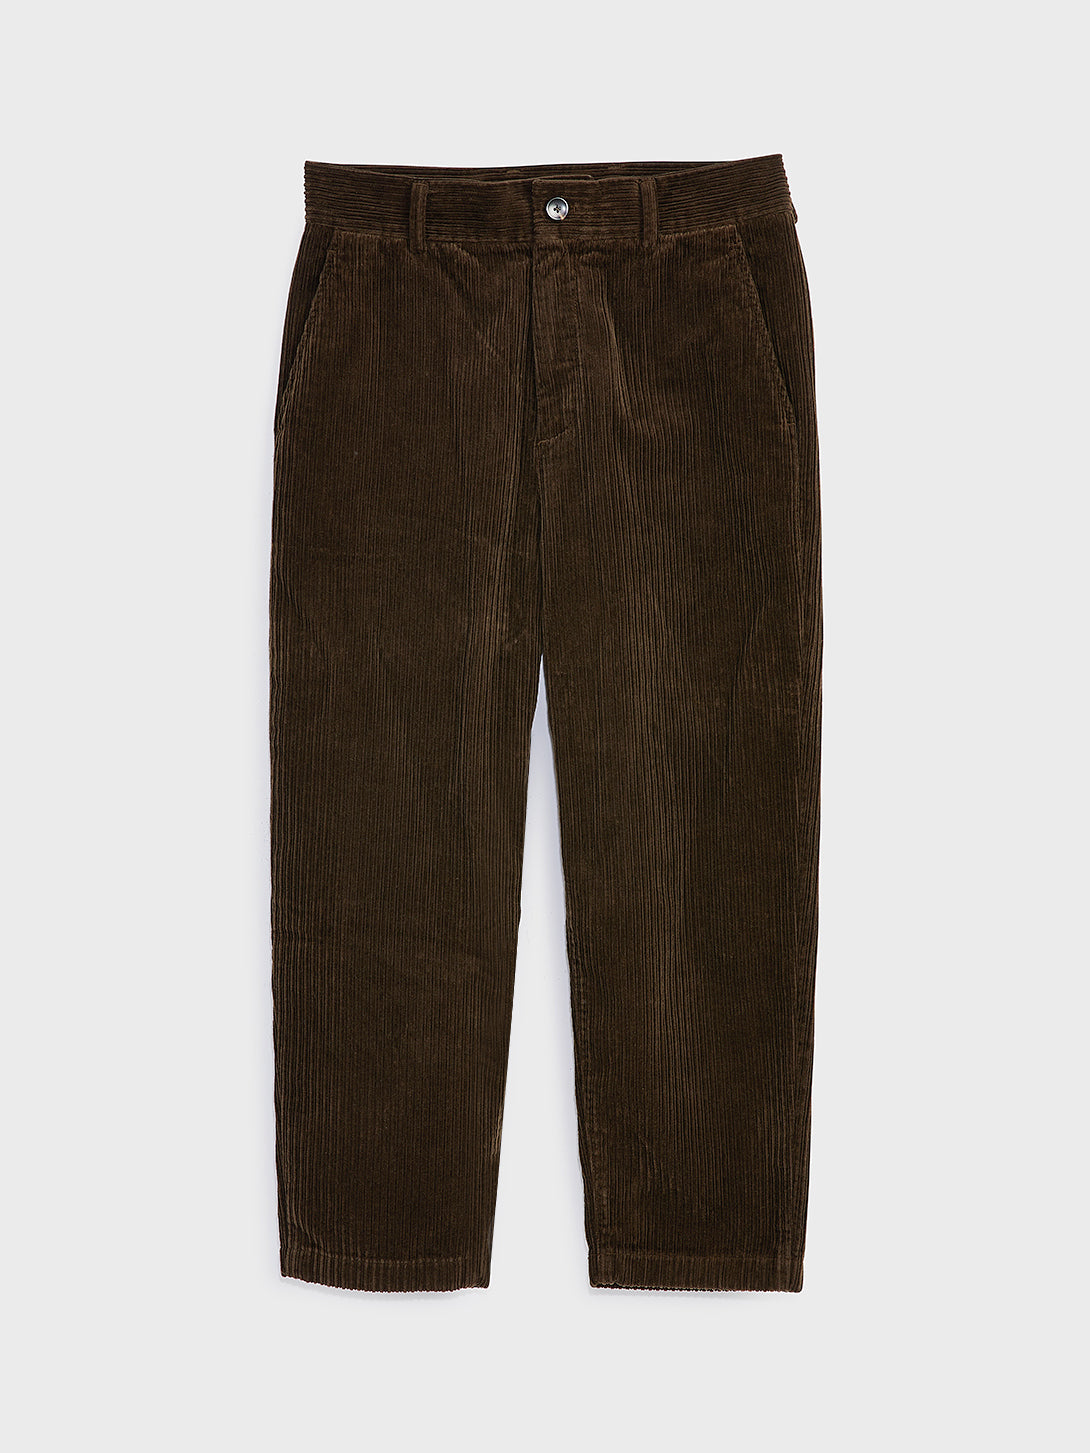 black friday deals ONS Clothing Men's CROSBY CORDUROY PANTS in DK BROWN